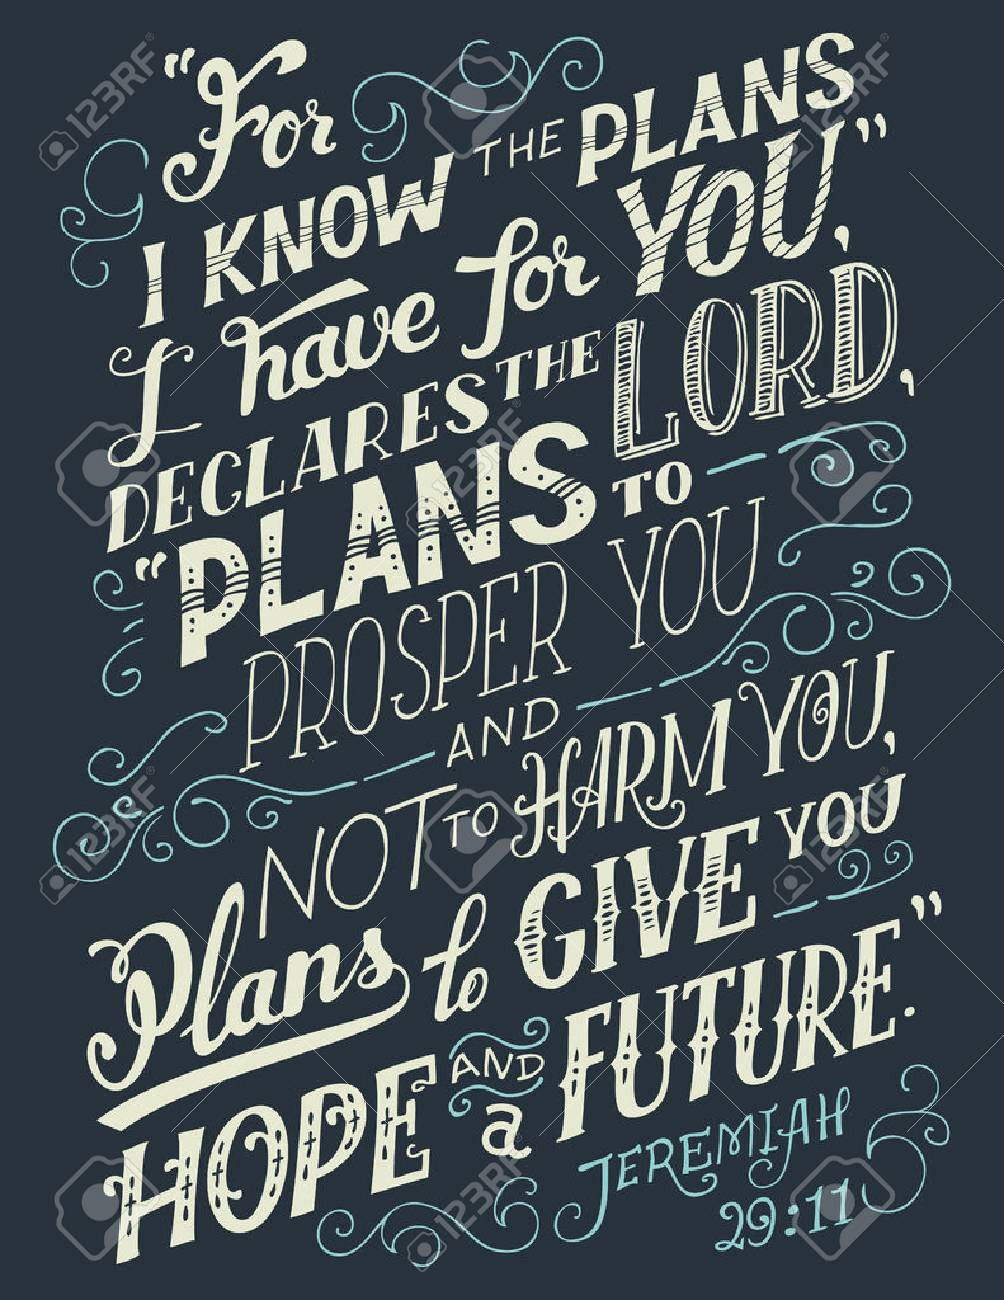 For I Know The Plans I Have For You Declares The Lord Plans